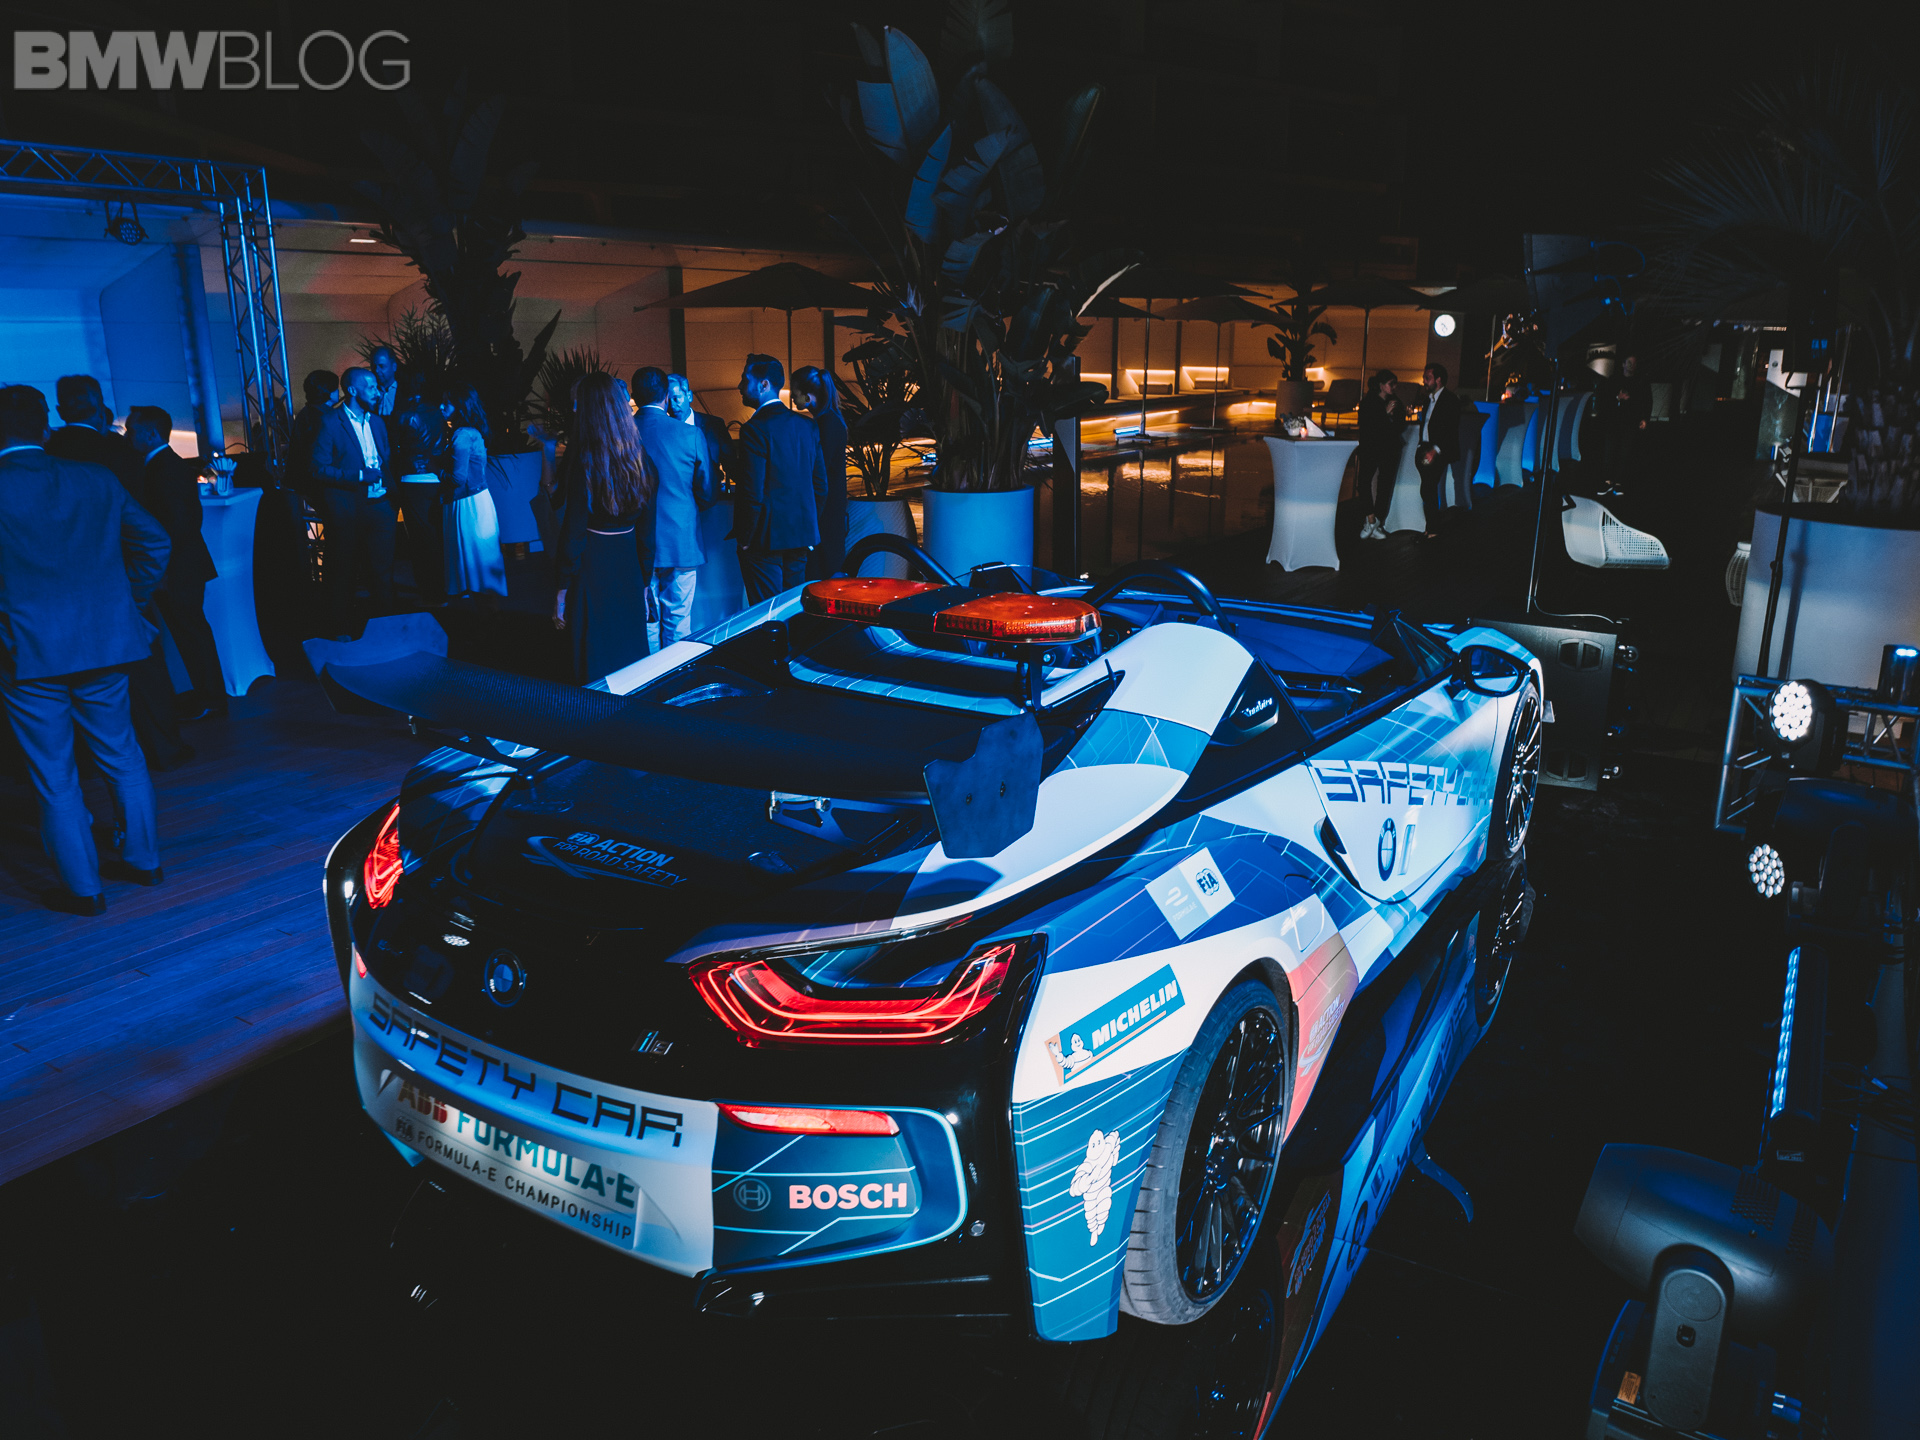 Real life photos: BMW i8 Roadster Safety Car